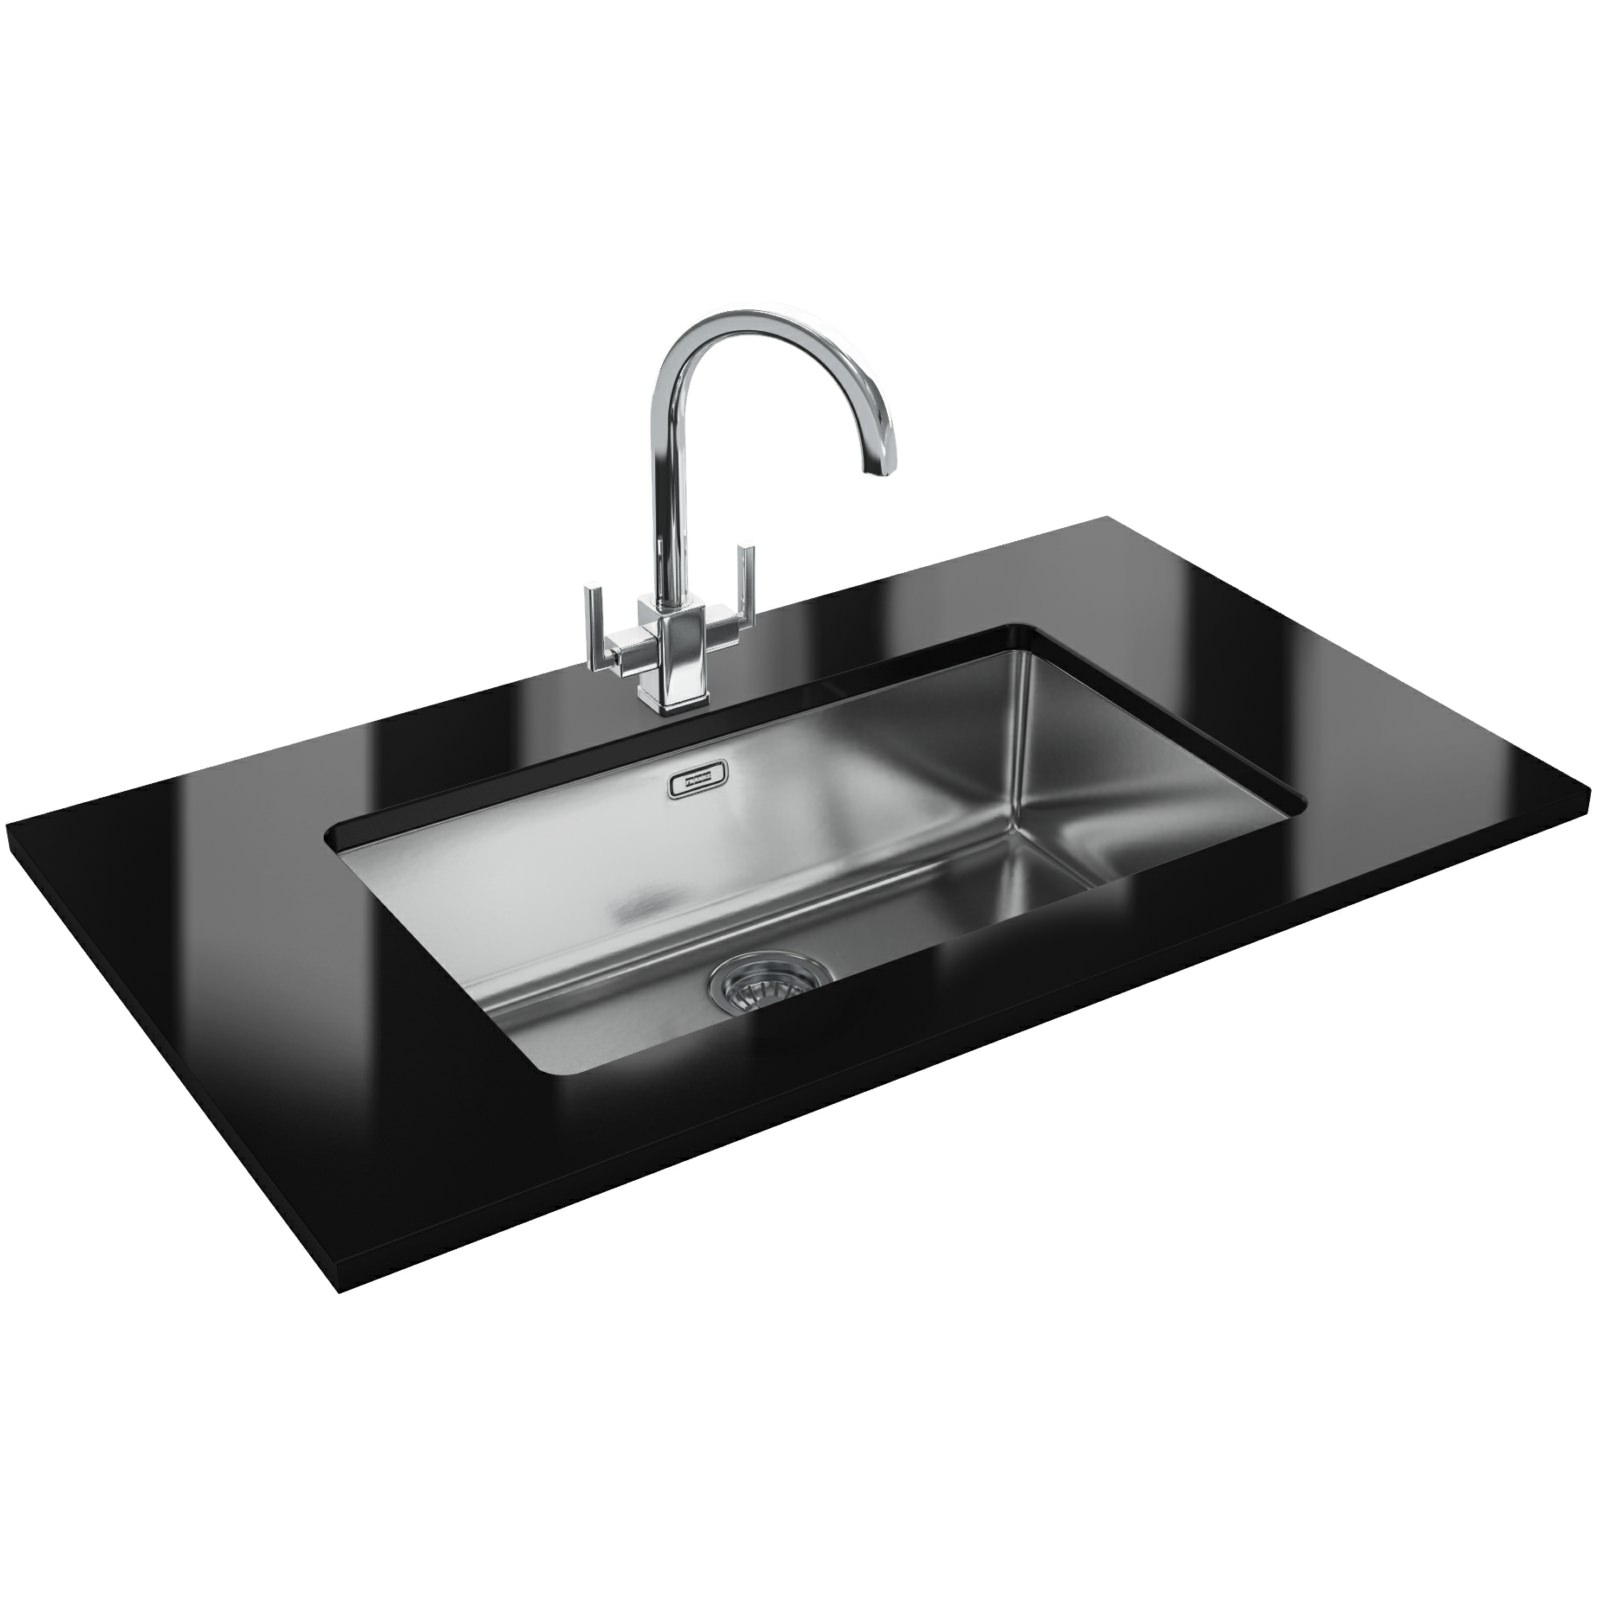 Franke Sink Kubus : Franke Kubus Designer Pack KBX 110 70 Stainless Steel Kitchen Sink And ...